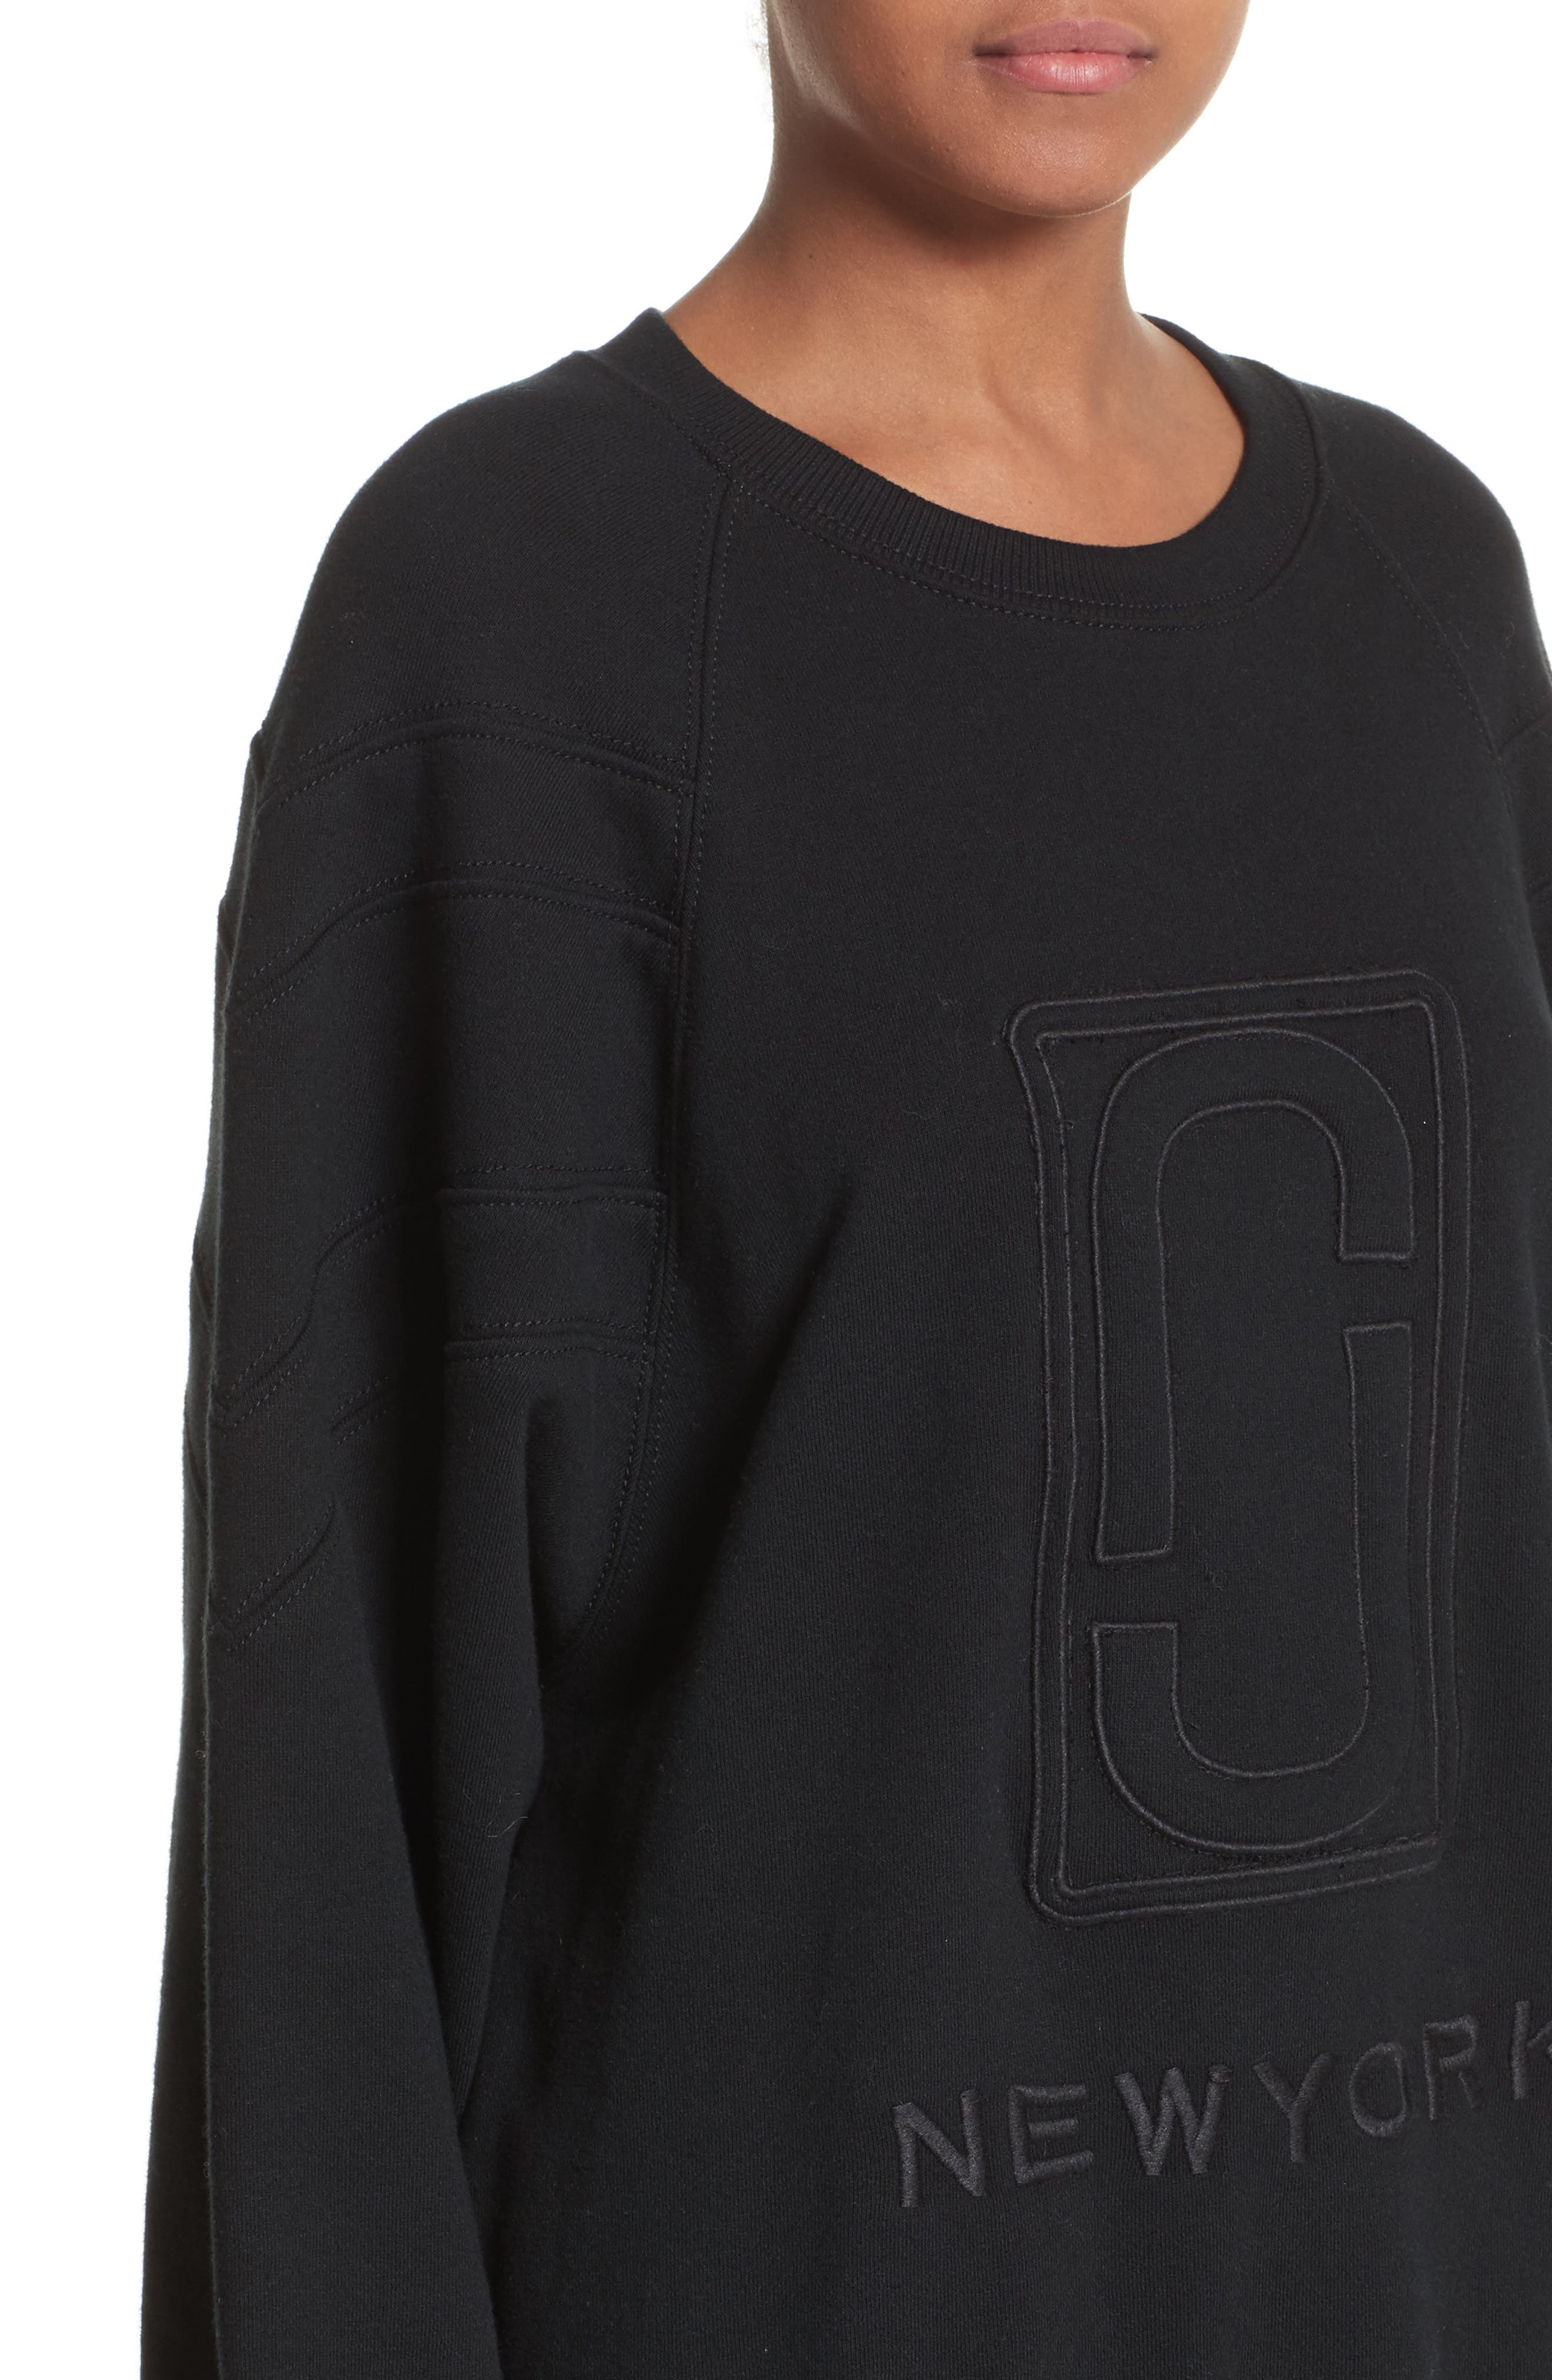 Embroidered Logo Sweatshirt,                             Alternate thumbnail 4, color,                             Black